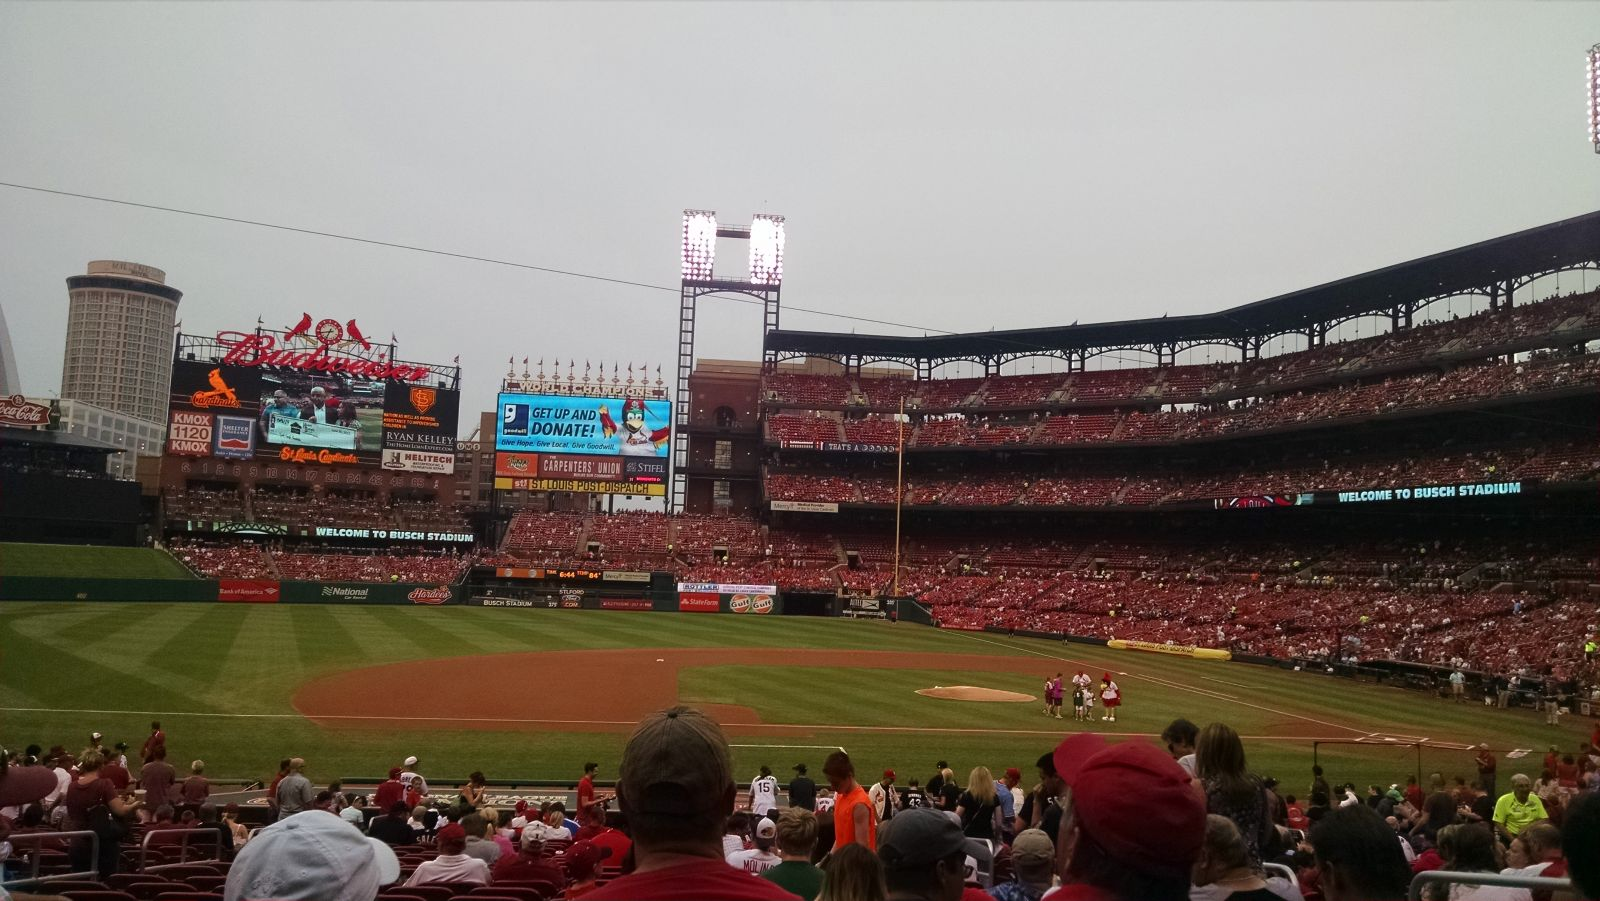 Busch Stadium : Row 18